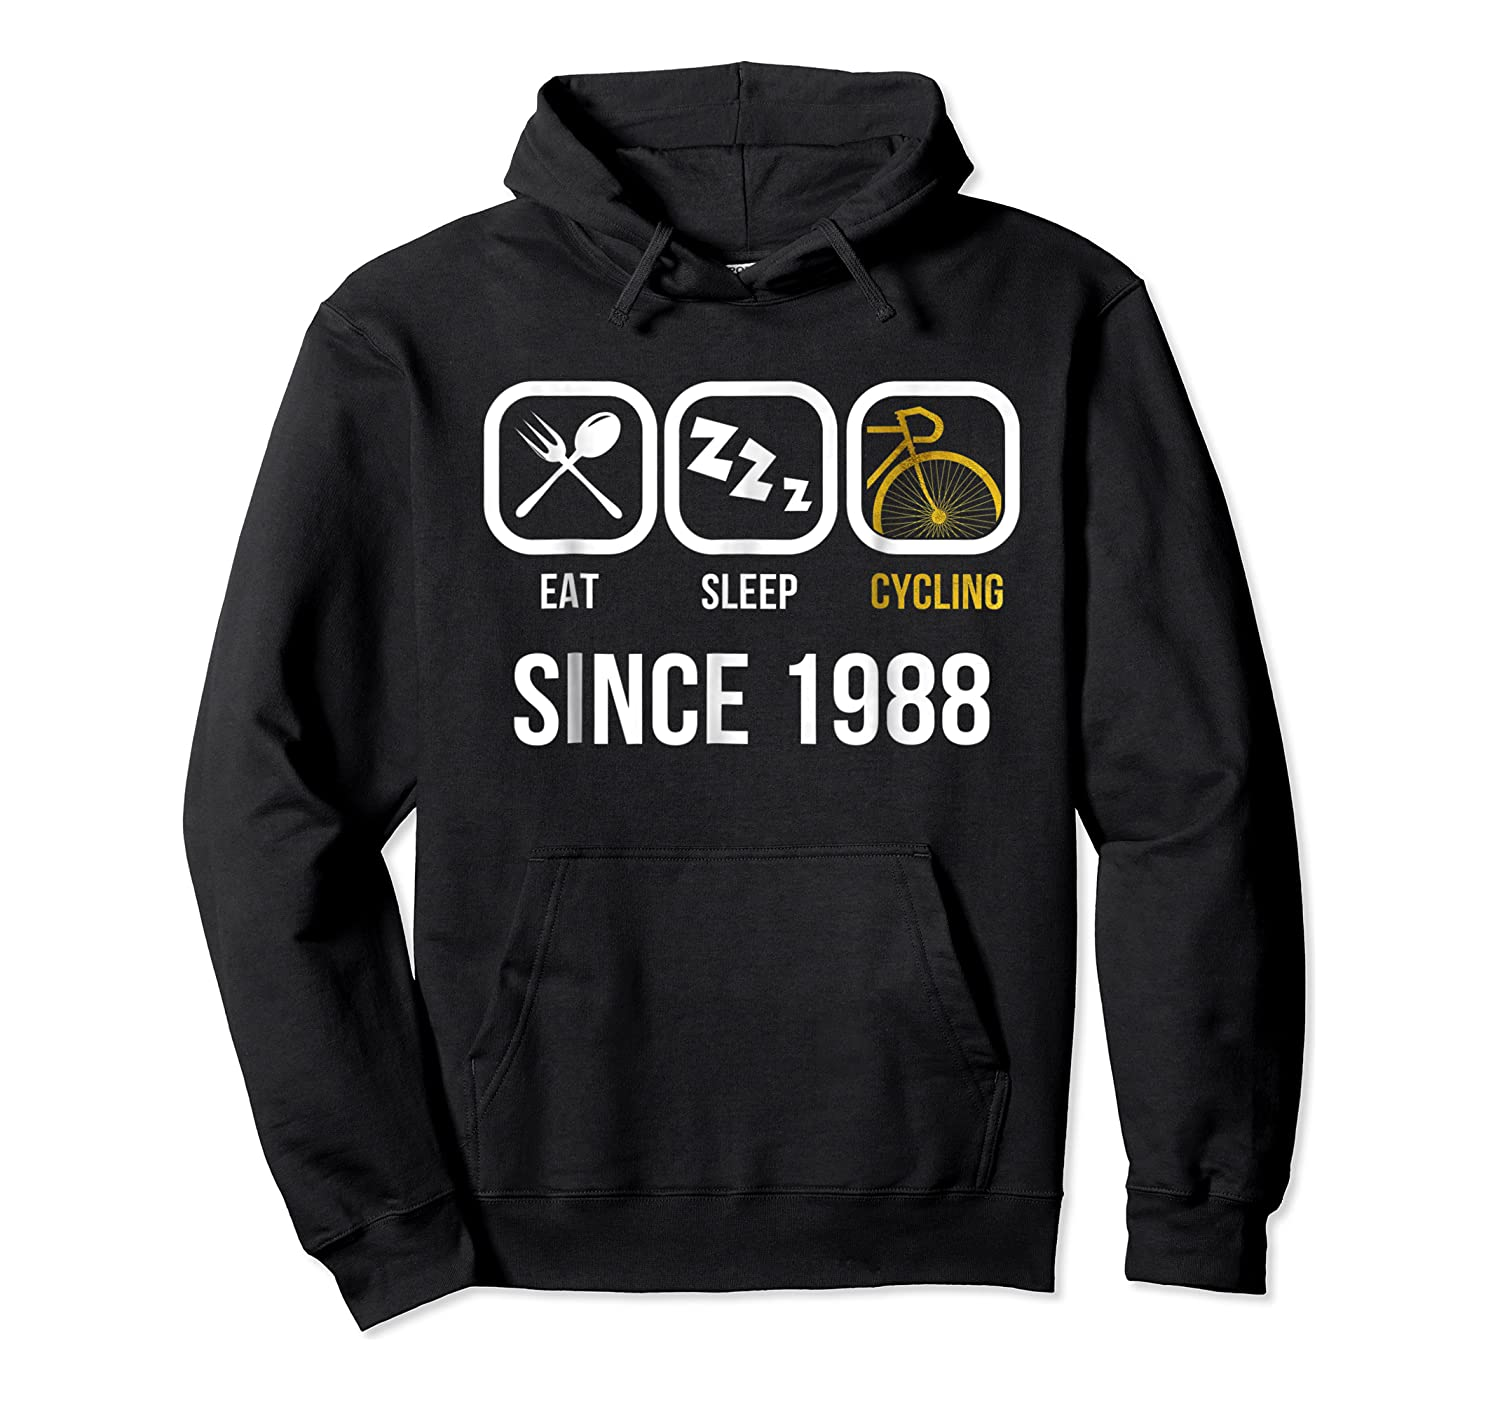 Eat Sleep Cycling Since 1988 T-shirt 30th Birthday Gift Tee Unisex Pullover Hoodie